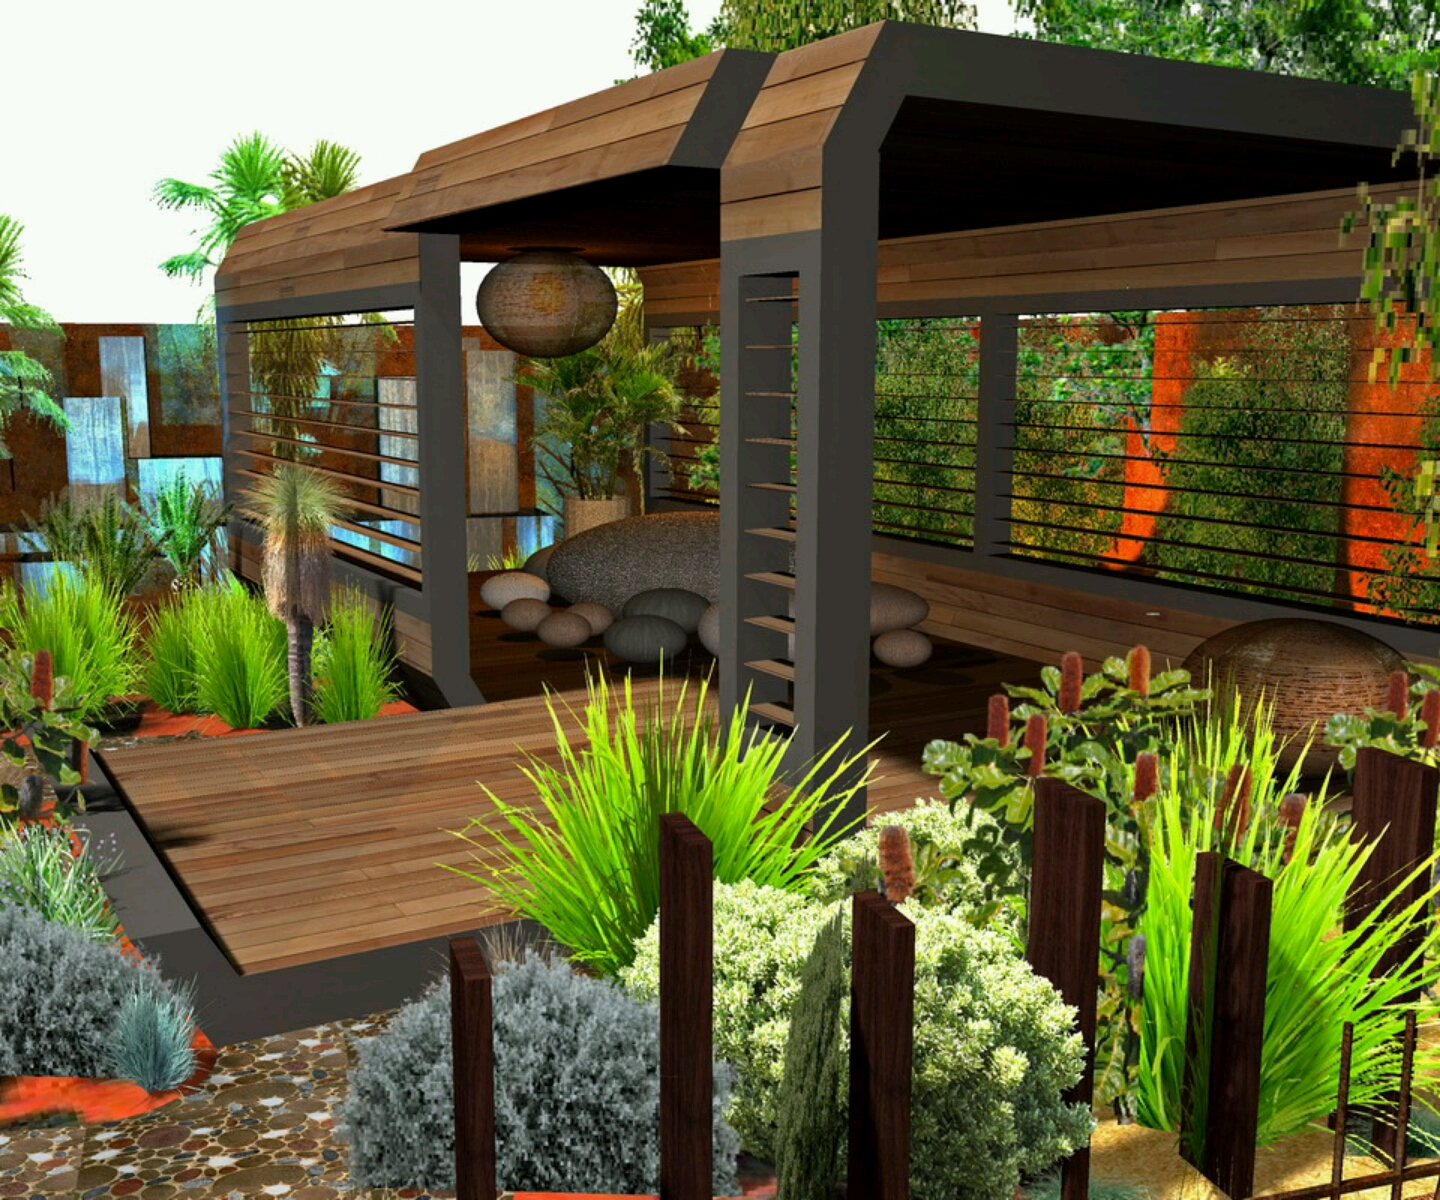 New home designs latest modern homes garden designs ideas for Garden scaping ideas